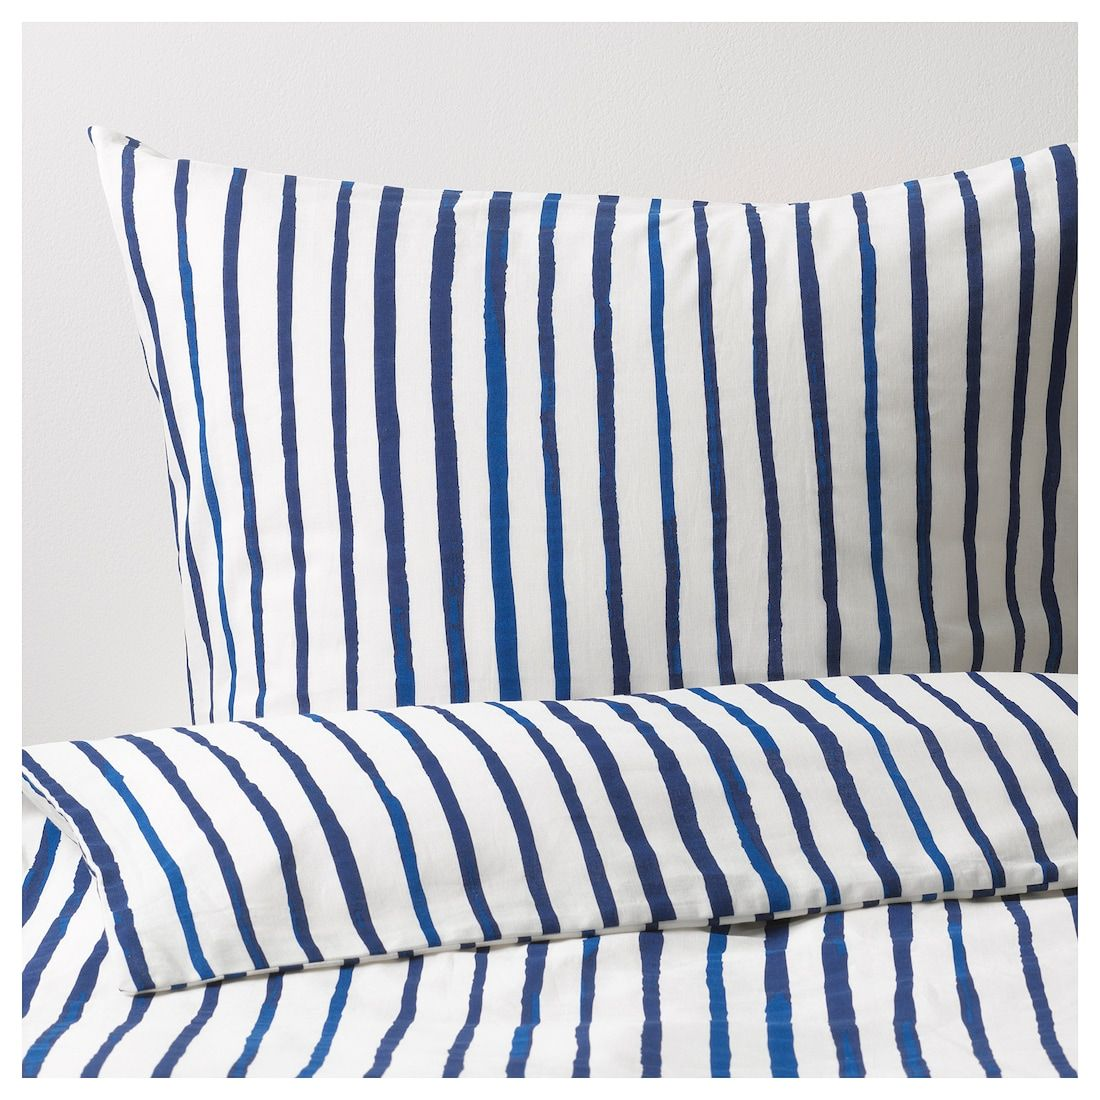 SÅNGLÄRKA Duvet cover and pillowcase(s), stripe, blue